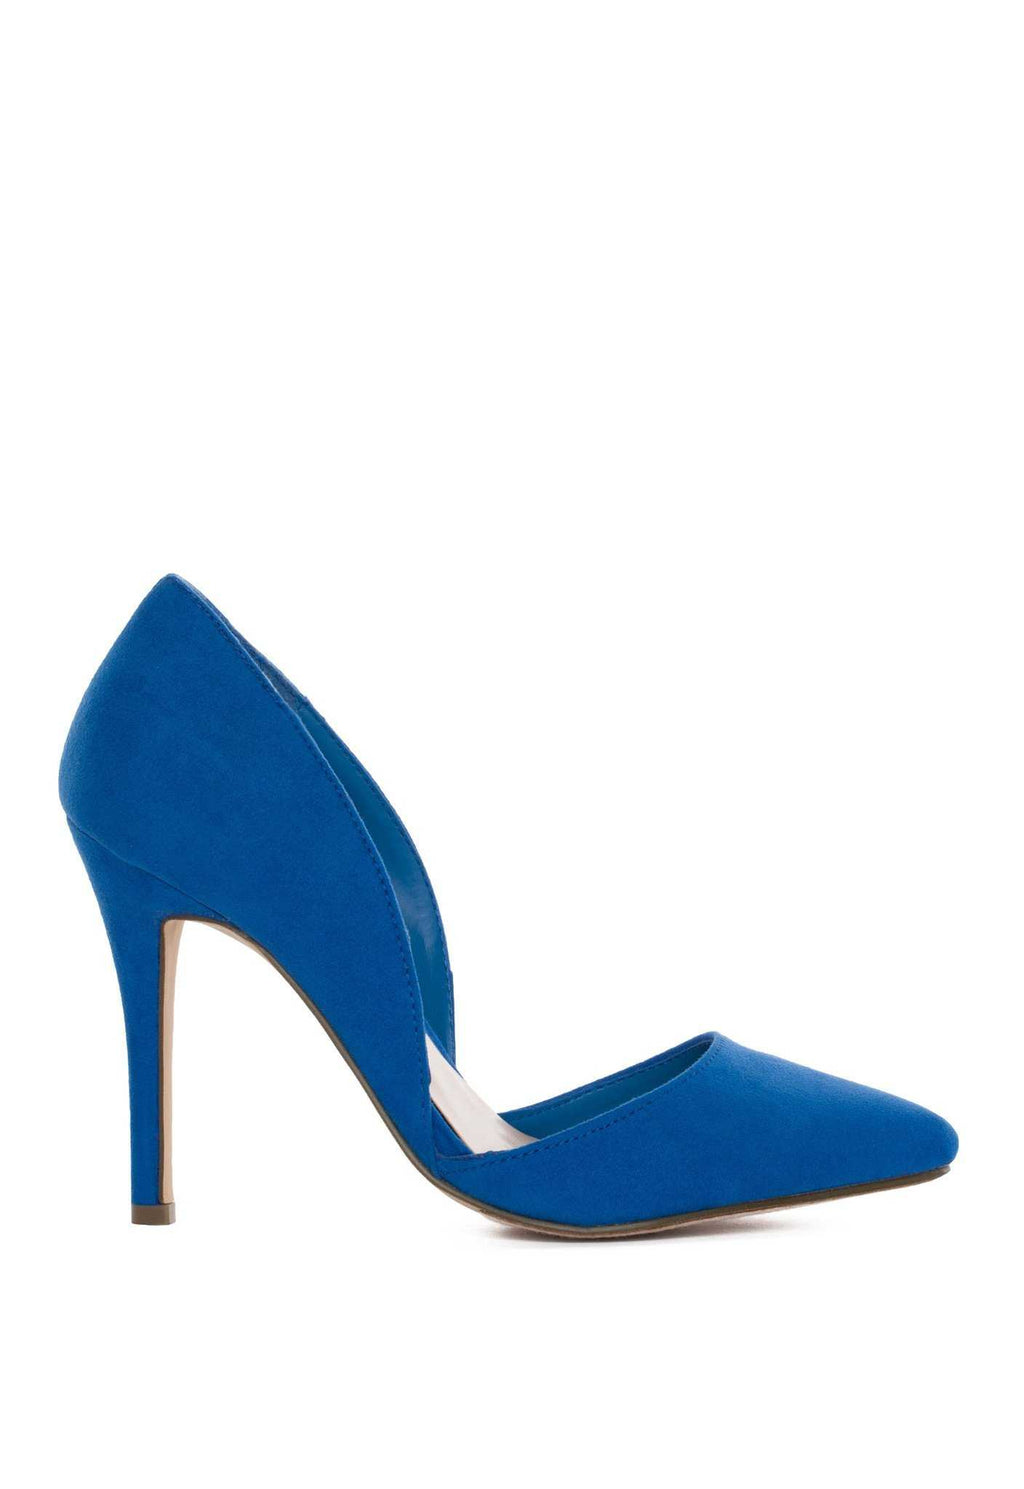 Shoes - Electric Love Pumps In Cobalt